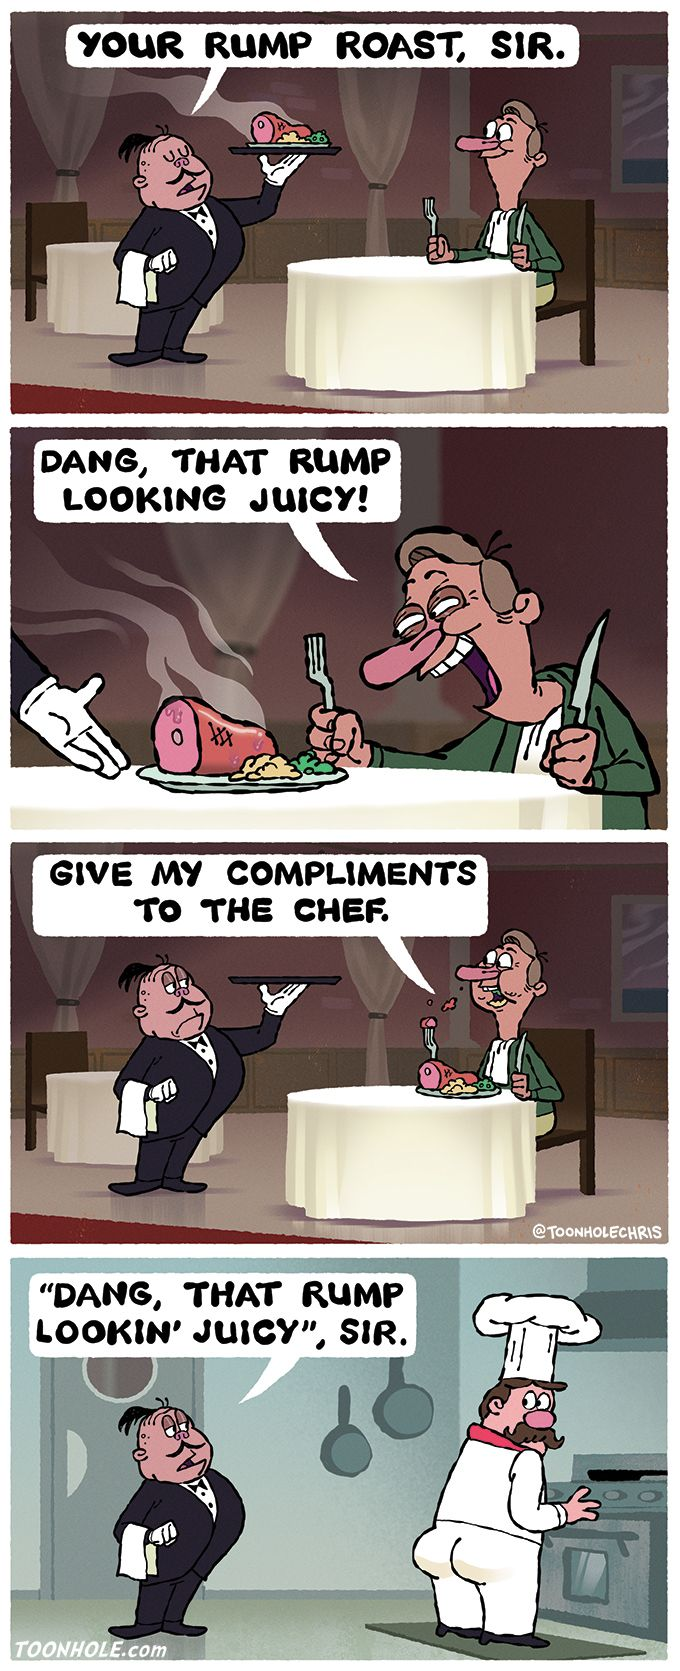 Compliments to the Chef